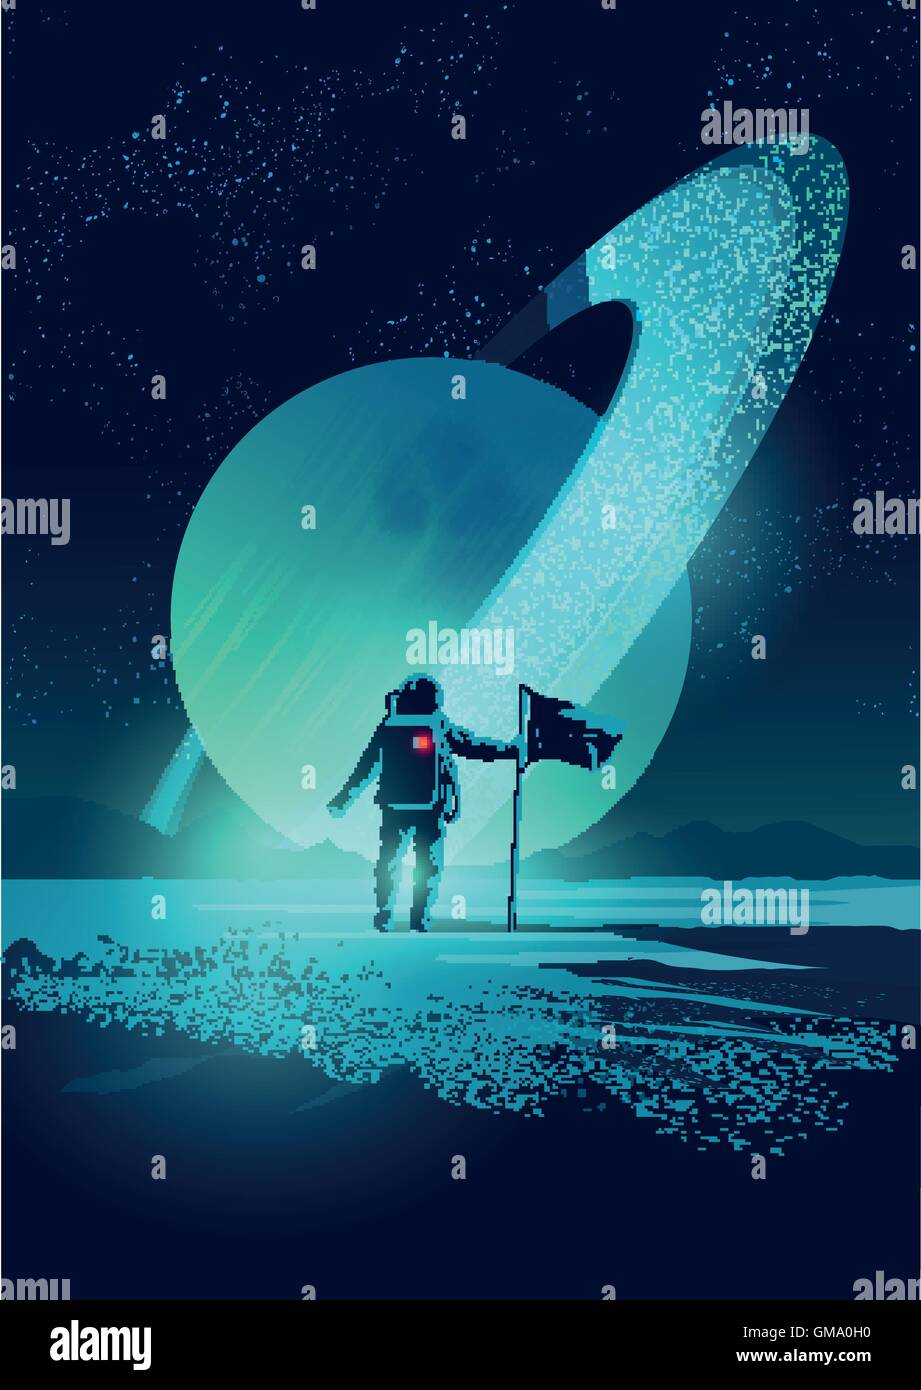 An Astronaut plants a flag on a distant planet set against a gas giant ringed planet. Vector illustration - Stock Image